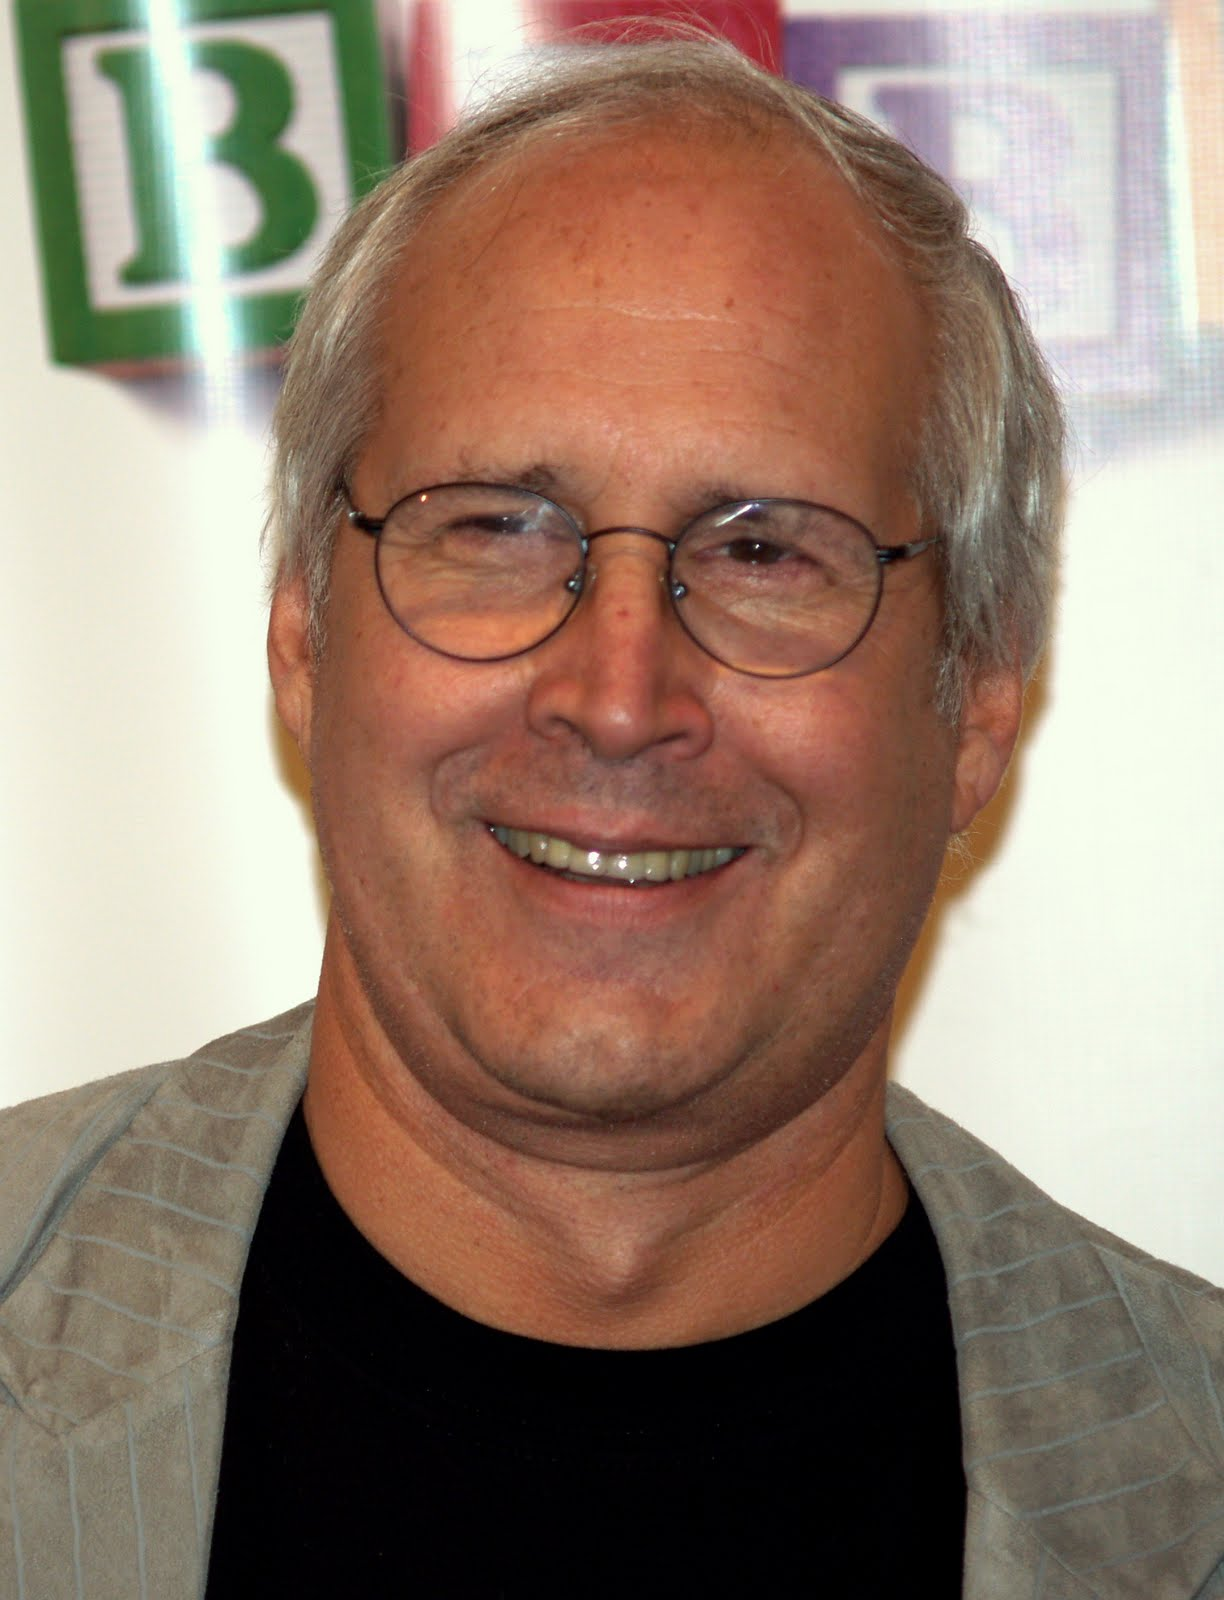 Chevy Chase Actor: HELLO FROM FRED & ETHEL'S HOUSE: 10/08/11